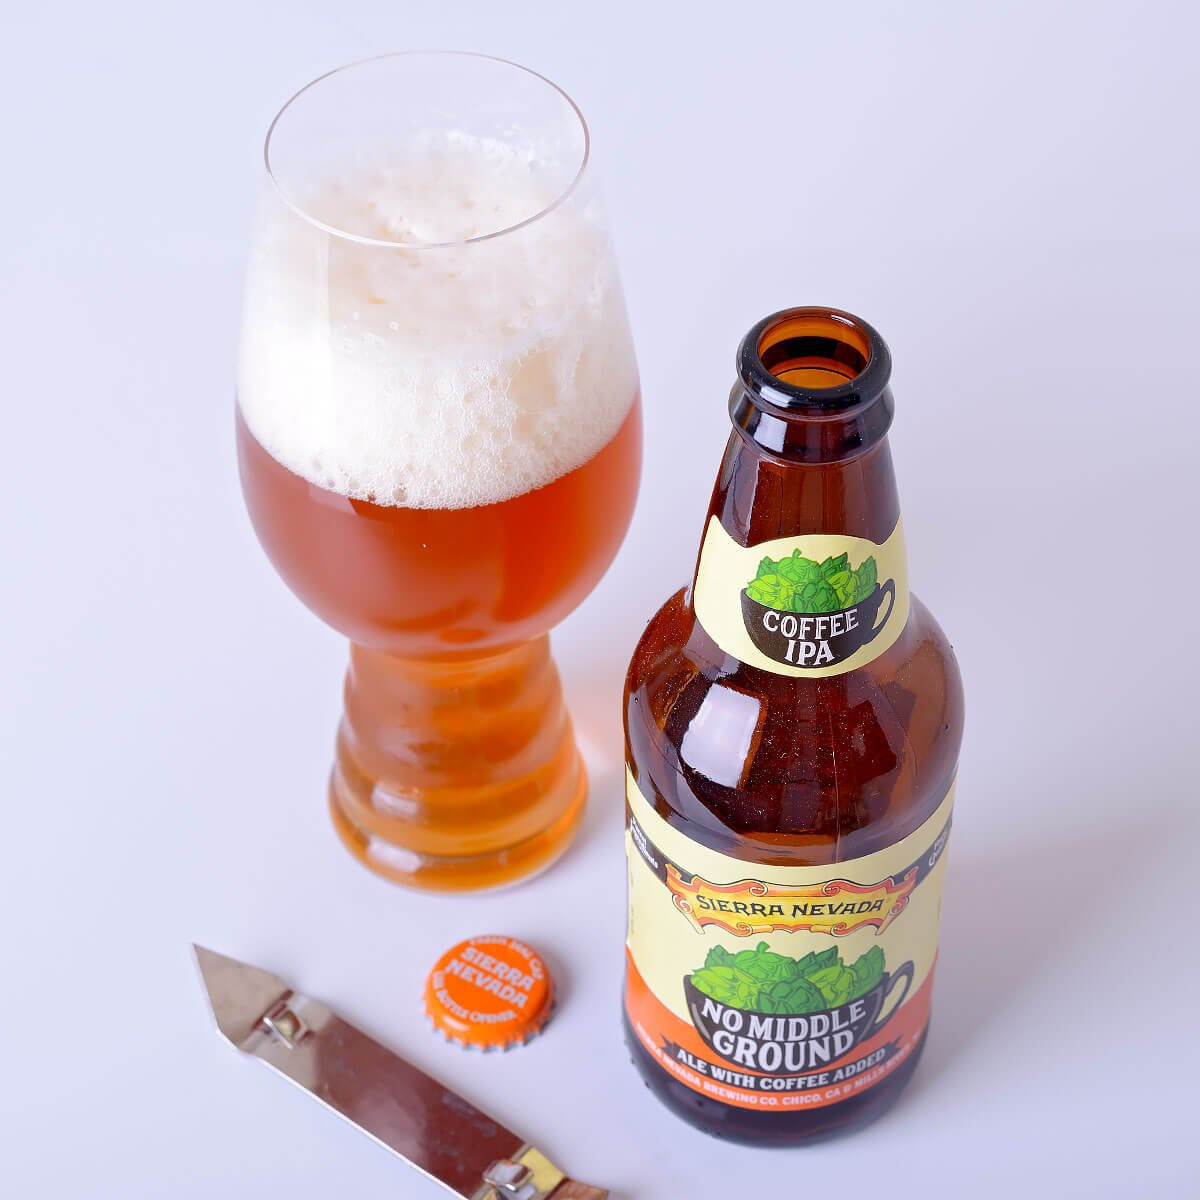 No Middle Ground IPA, an American IPA by Sierra Nevada Brewing Co.